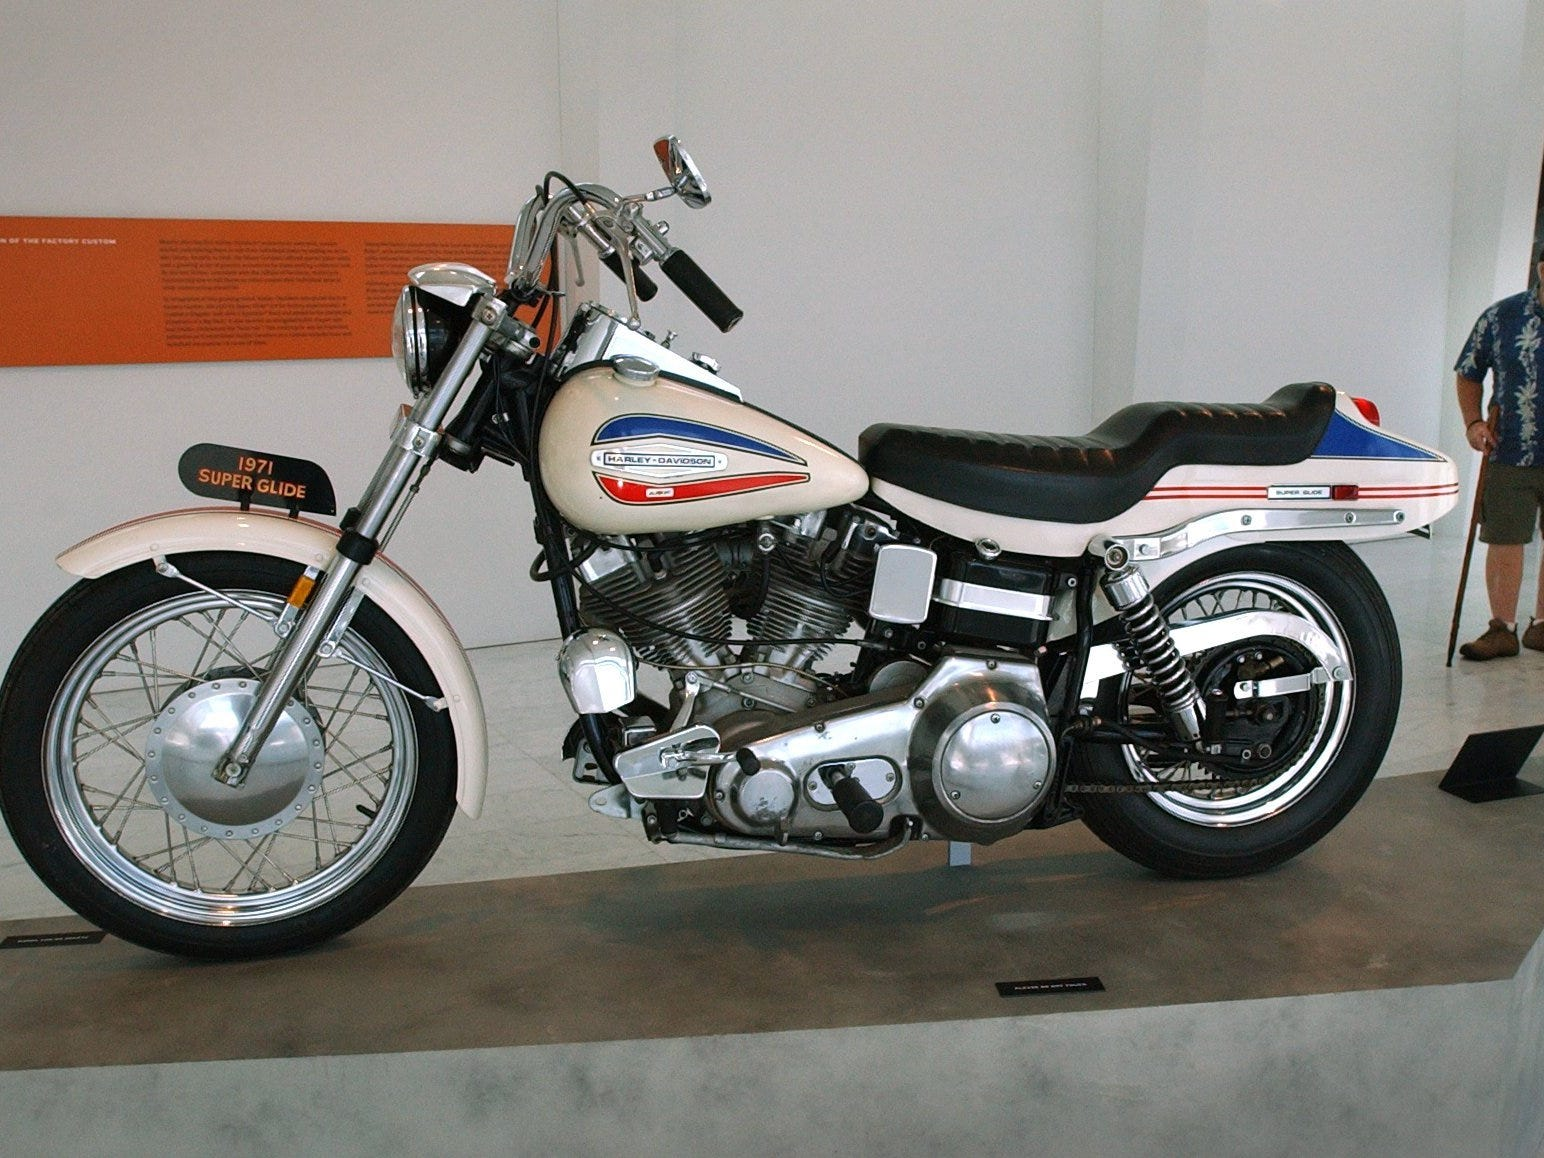 "A Harley-Davidson 1971 FX Super Glide is shown on display during ""Rolling Sculptures: The Art of Harley-Davidson,"" an exhibit at the Milwaukee Art Museum in 2003. The bike's gas tank includes the logo of the company's new owner, AMF, below the Harley logo."